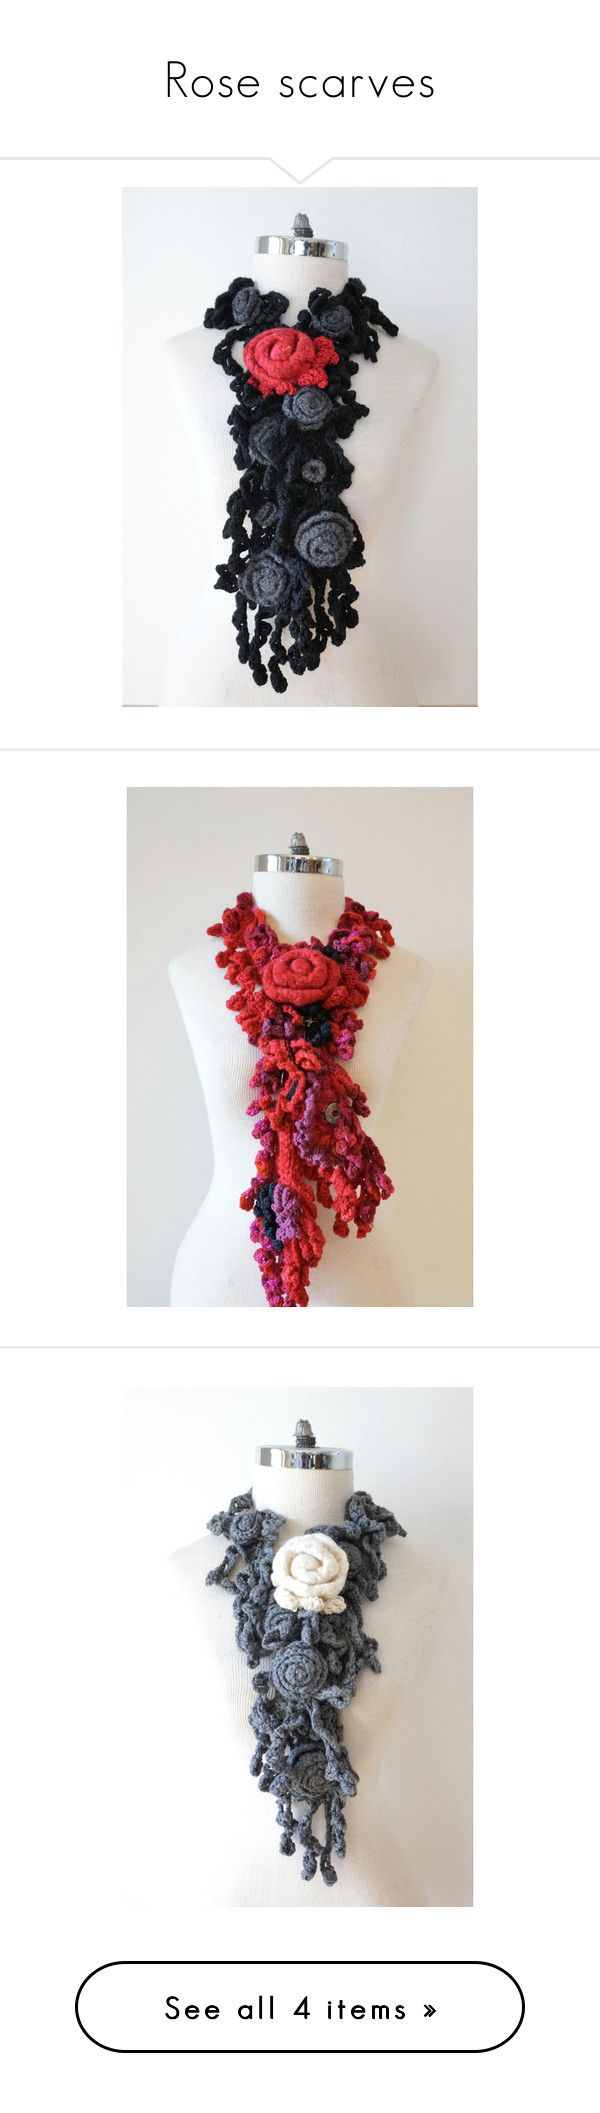 """""""Rose scarves"""" by valeriebaberdesigns ❤ liked on Polyvore featuring red scarves, pink scarves, red shawl, pink shawl, ivory shawl, merino wool scarves, gray scarves, floral scarves, grey scarves and accessories"""